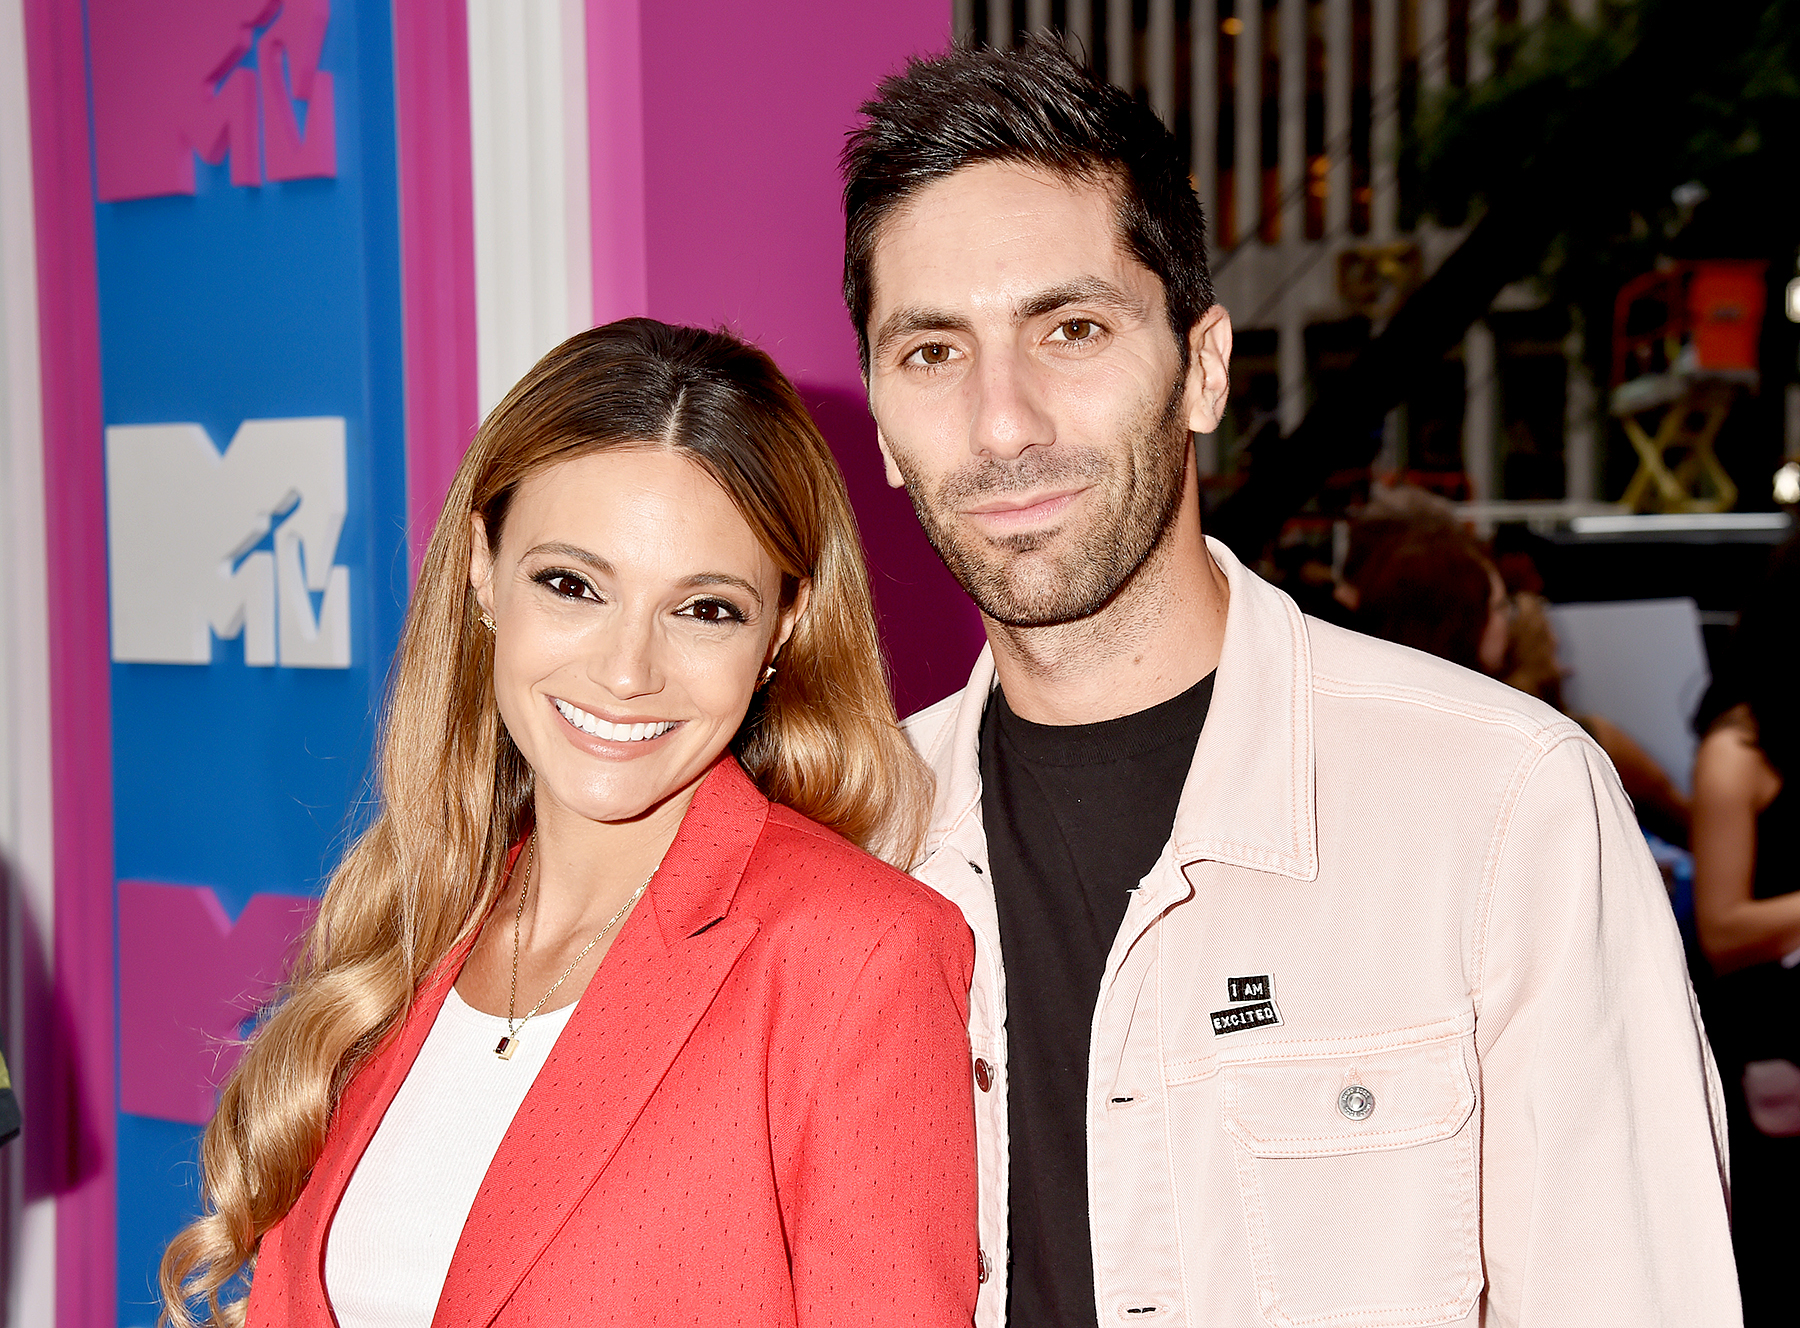 Nev-Schulman-and-Laura-Perlongo - Nev Schulman and Laura Perlongo attend the 2018 MTV Video Music Awards at Radio City Music Hall on August 20, 2018 in New York City.